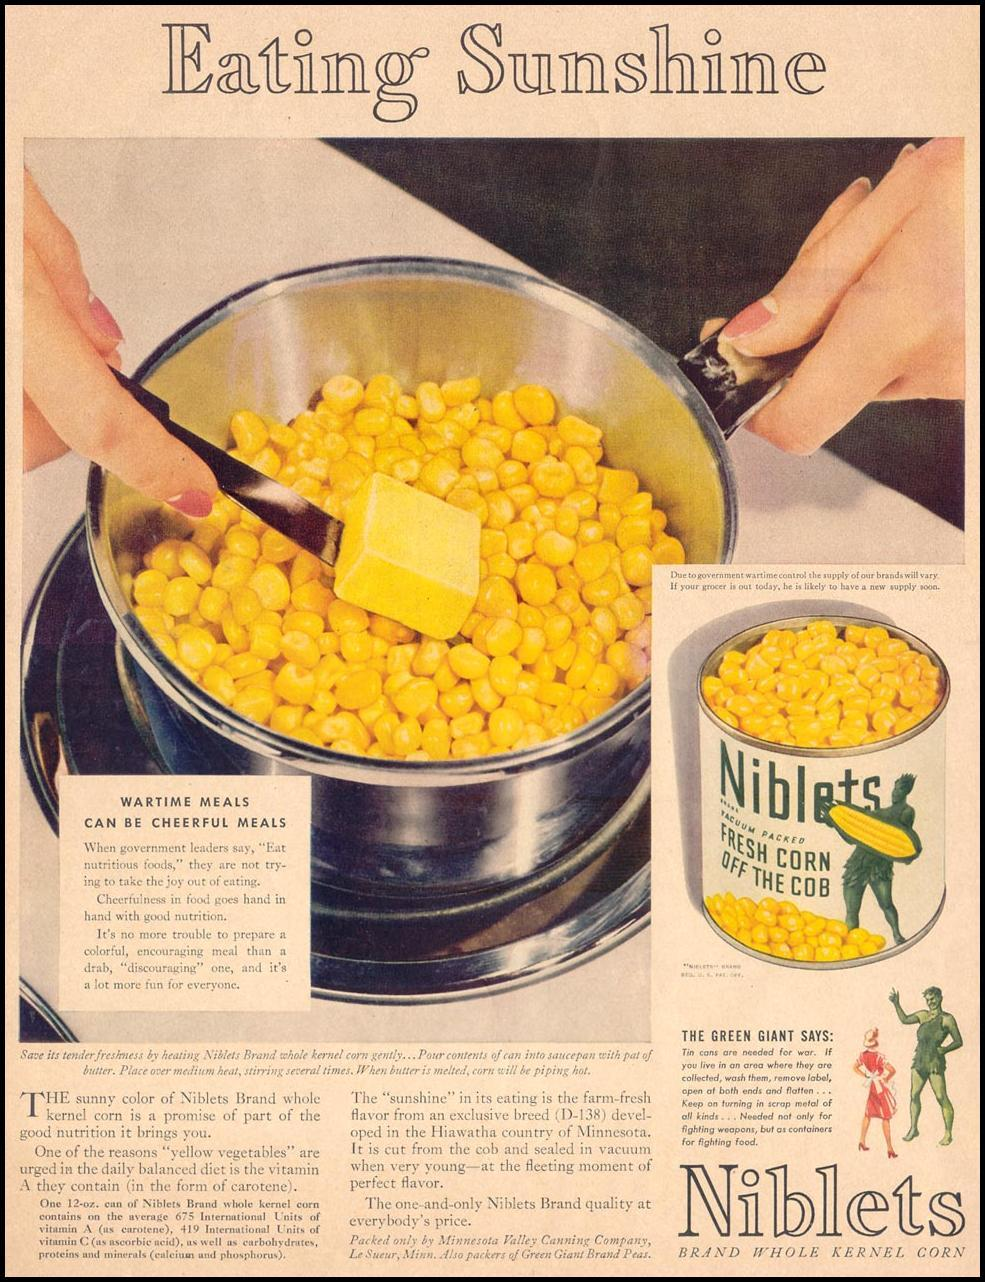 GREEN GIANT NIBLETS BRAND WHOLE KERNEL CORN LIFE 05/24/1943